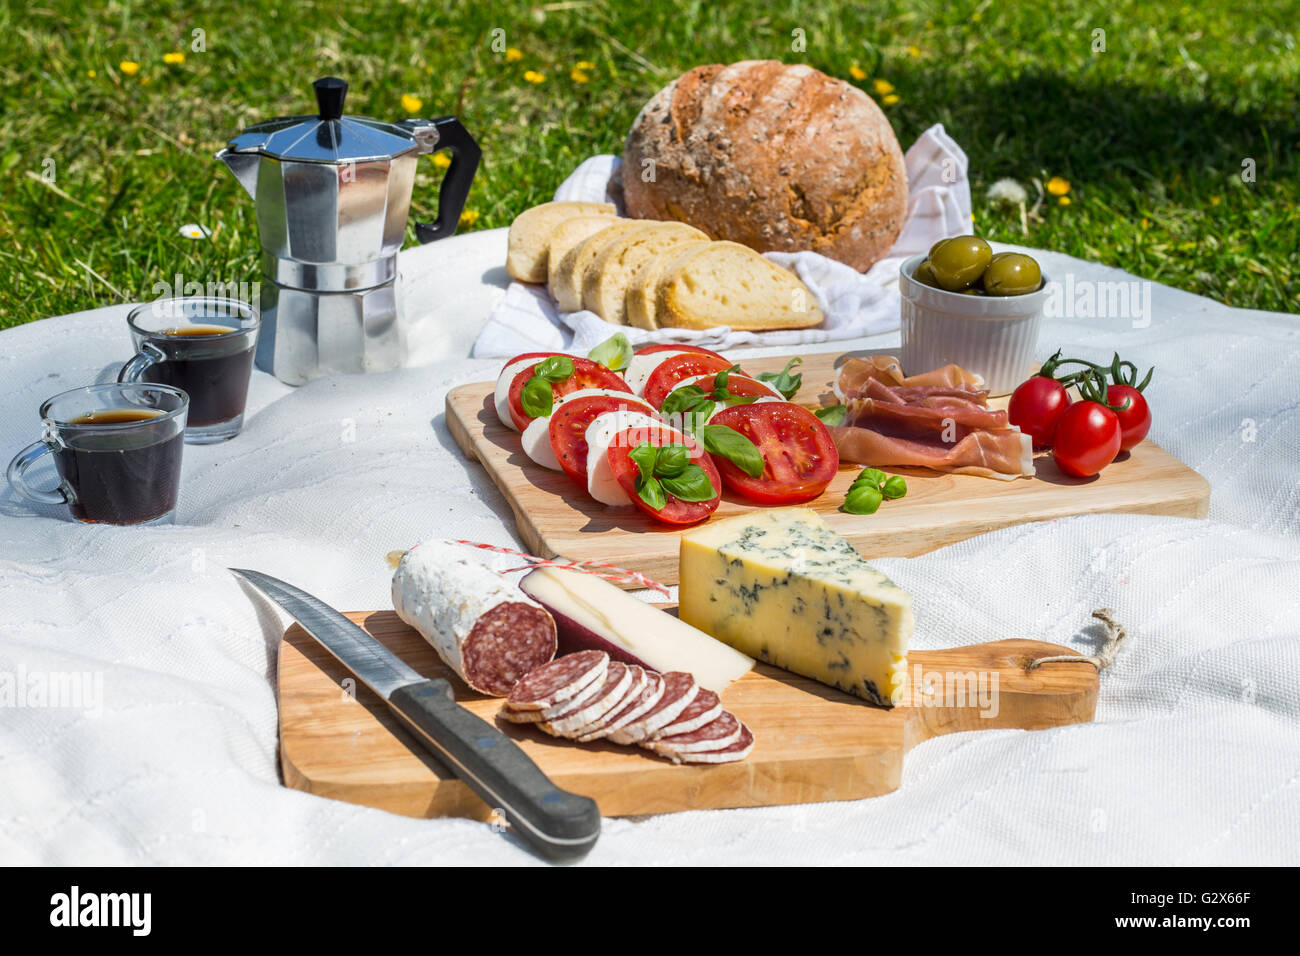 Outdoor picnic consisting of rustic bread, ciabatta, espresso in cups, olives, tomatoes, parma ham, mozzarella - Stock Image